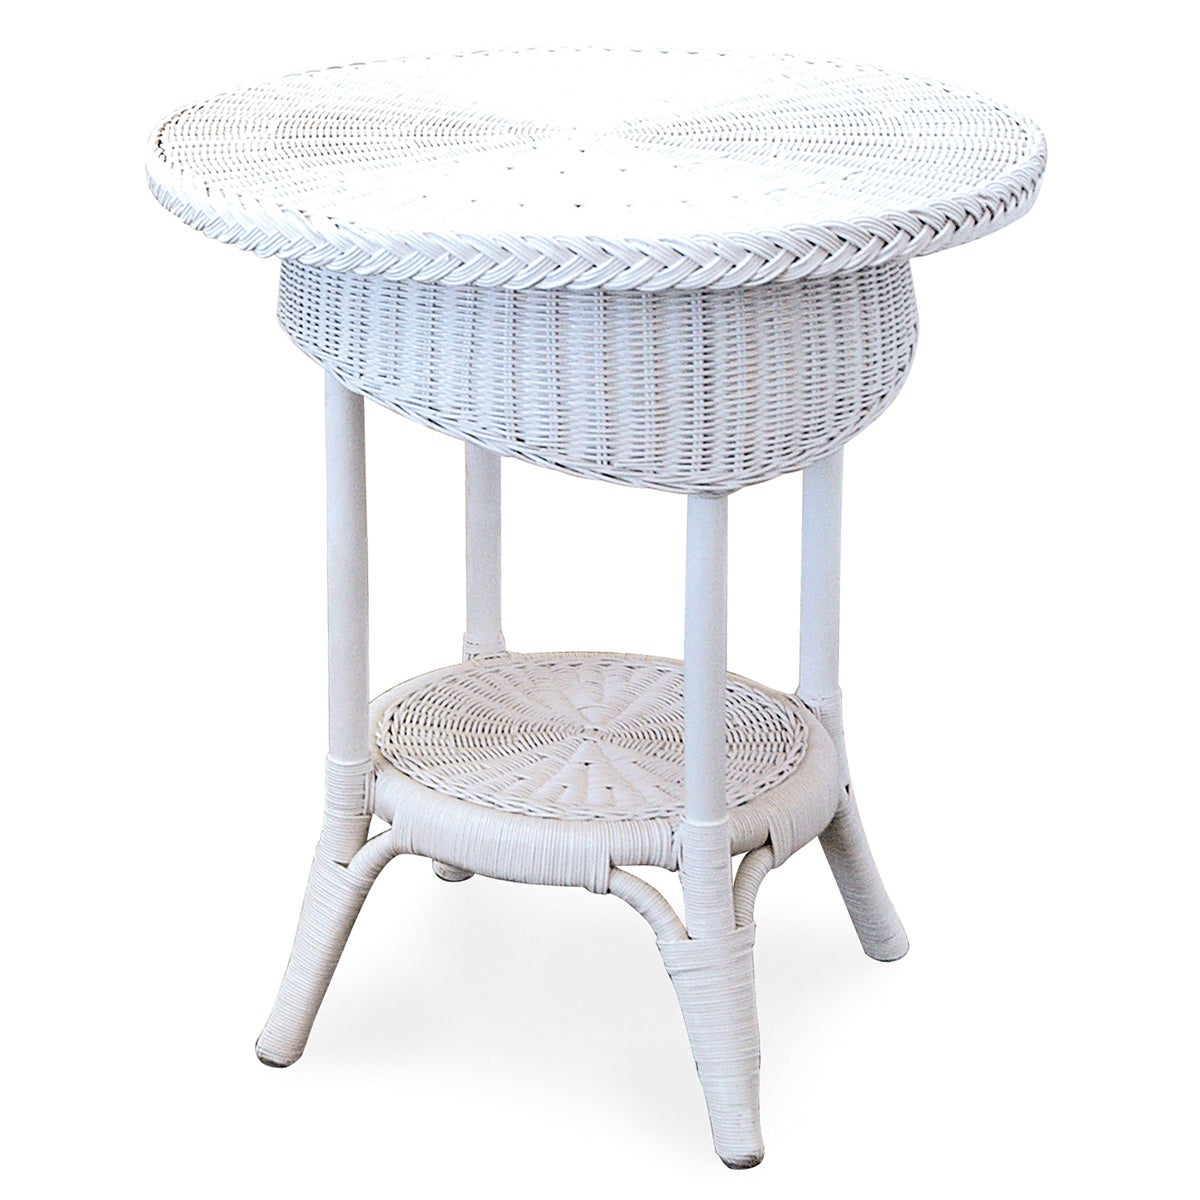 Syracuse Cane Outdoor Round Side Table White 70cm